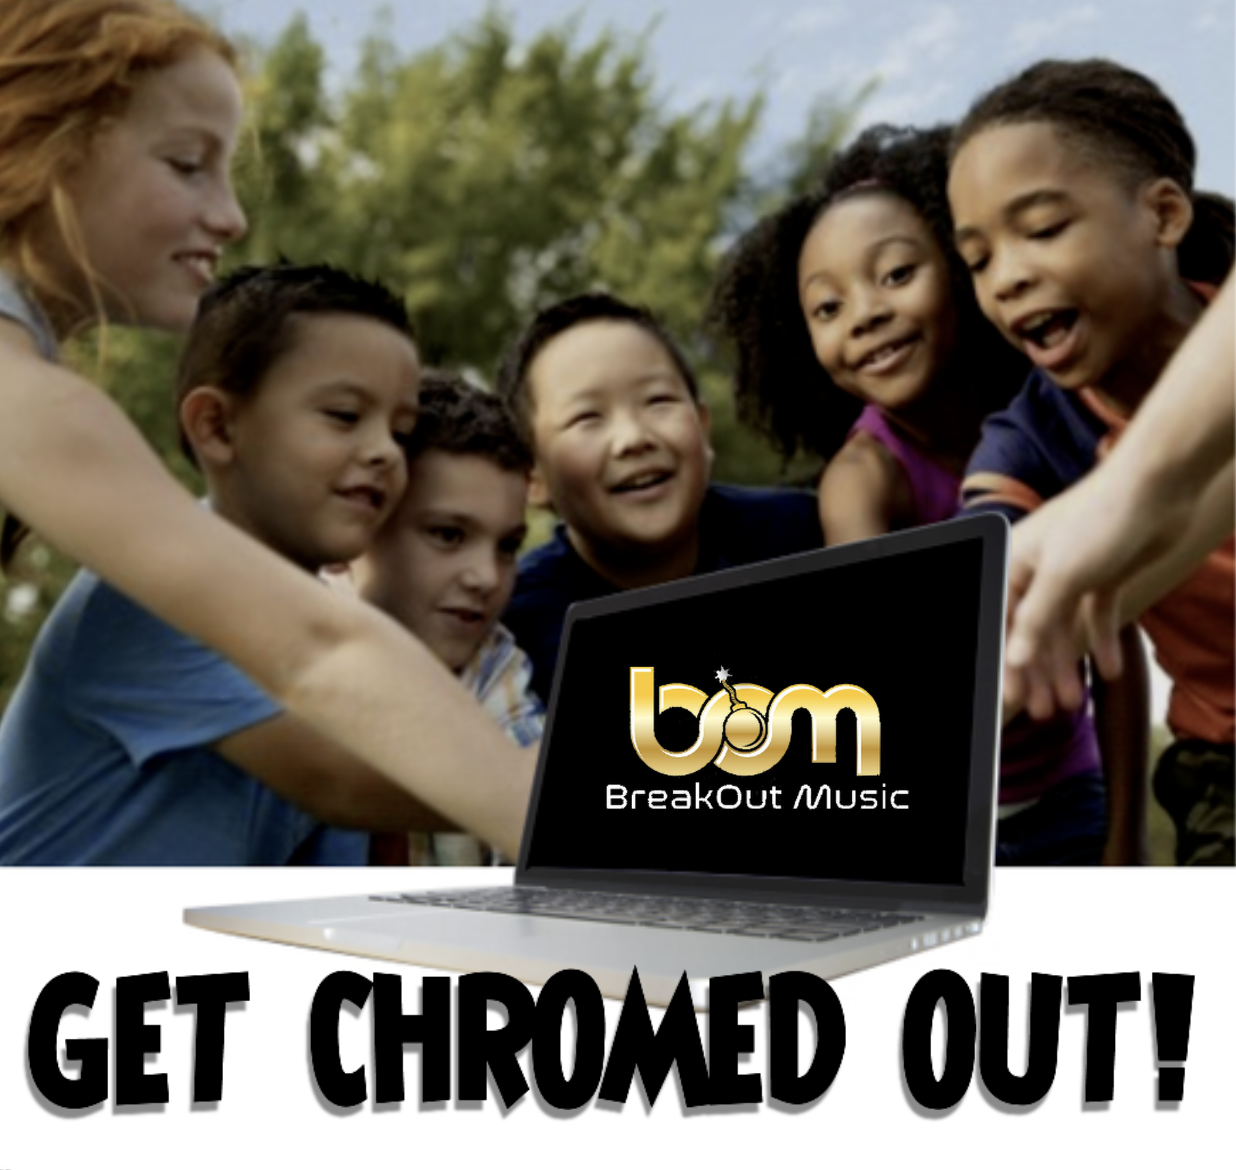 Wanna WIN a Chromebook? GET CHROMED OUT!